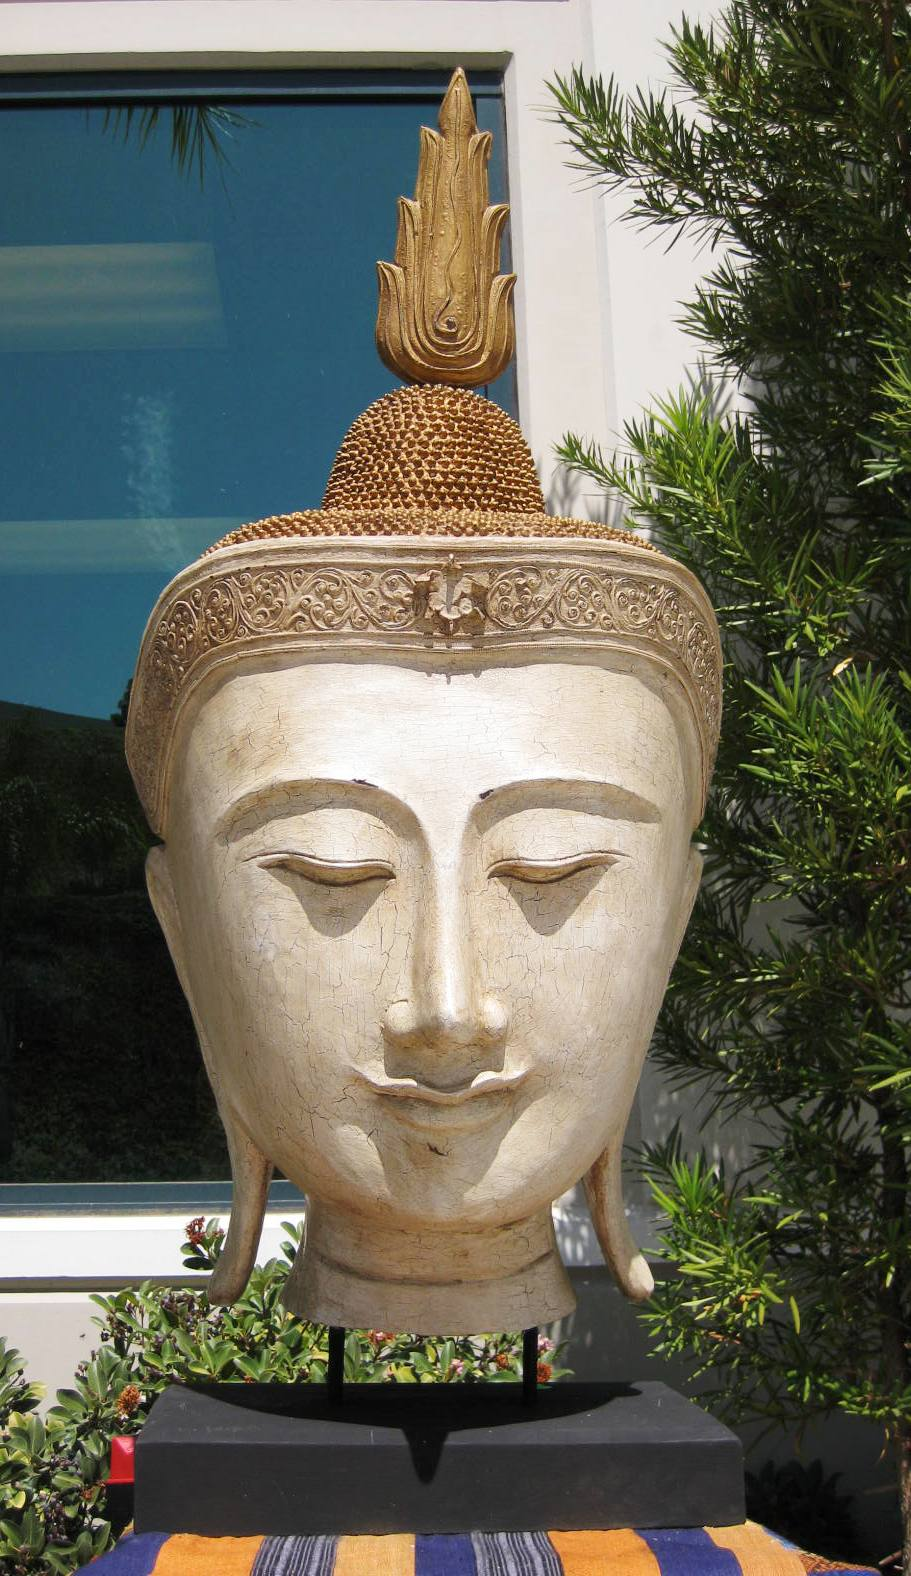 Larger than Life Size Buddha Head Antique Finish